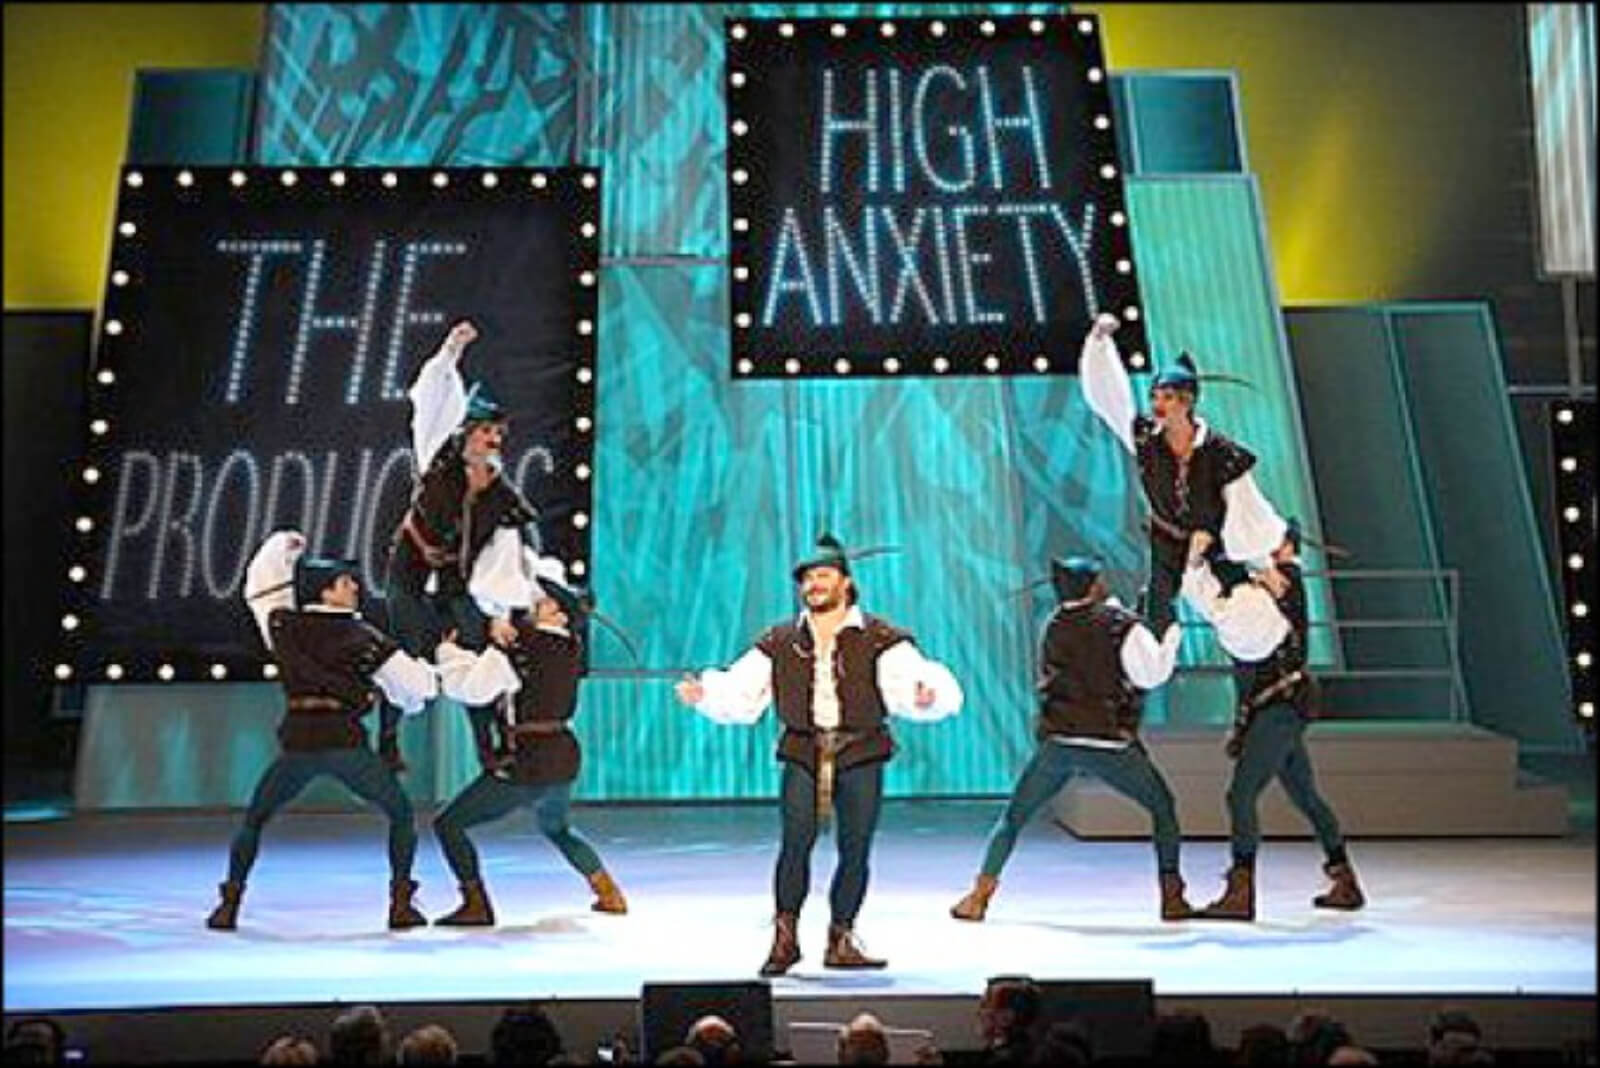 Jack Black and six male dancers - all dressed as Robin Hood, with two men lifted to his left and right with fists in the air.